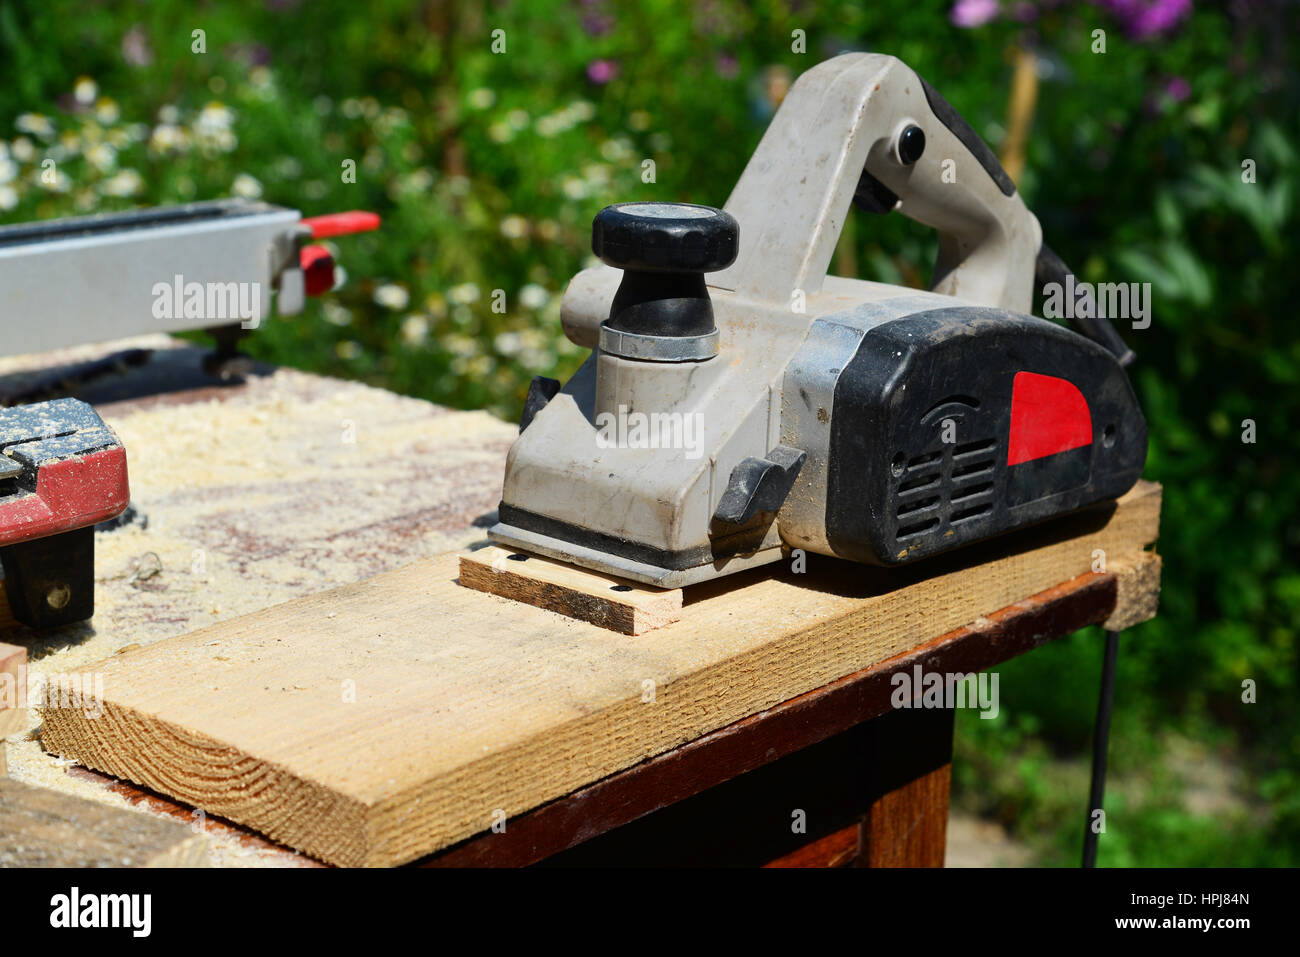 Electric Planer Stock Photos Images Alamy What Does An Do Is On The Board Nature Image